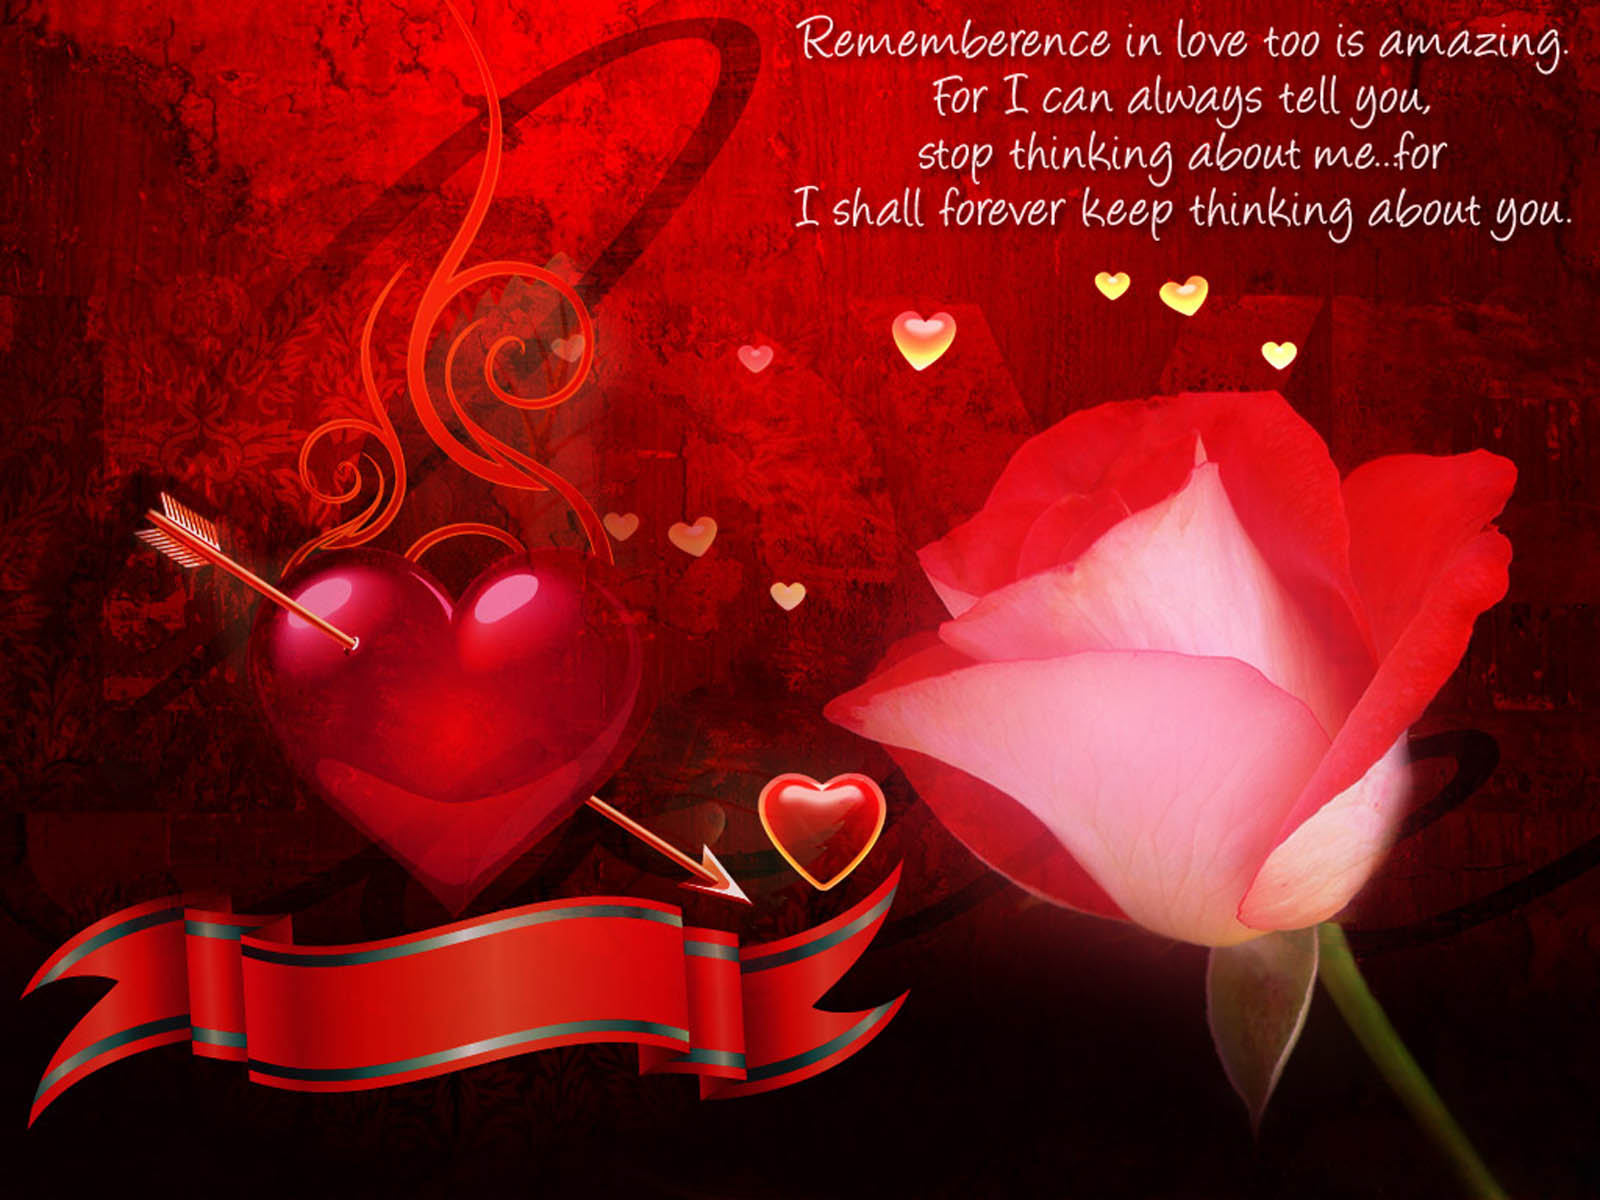 Desktop Wallpaper I Love You : wallpapers: Love Quotes Desktop Wallpapers